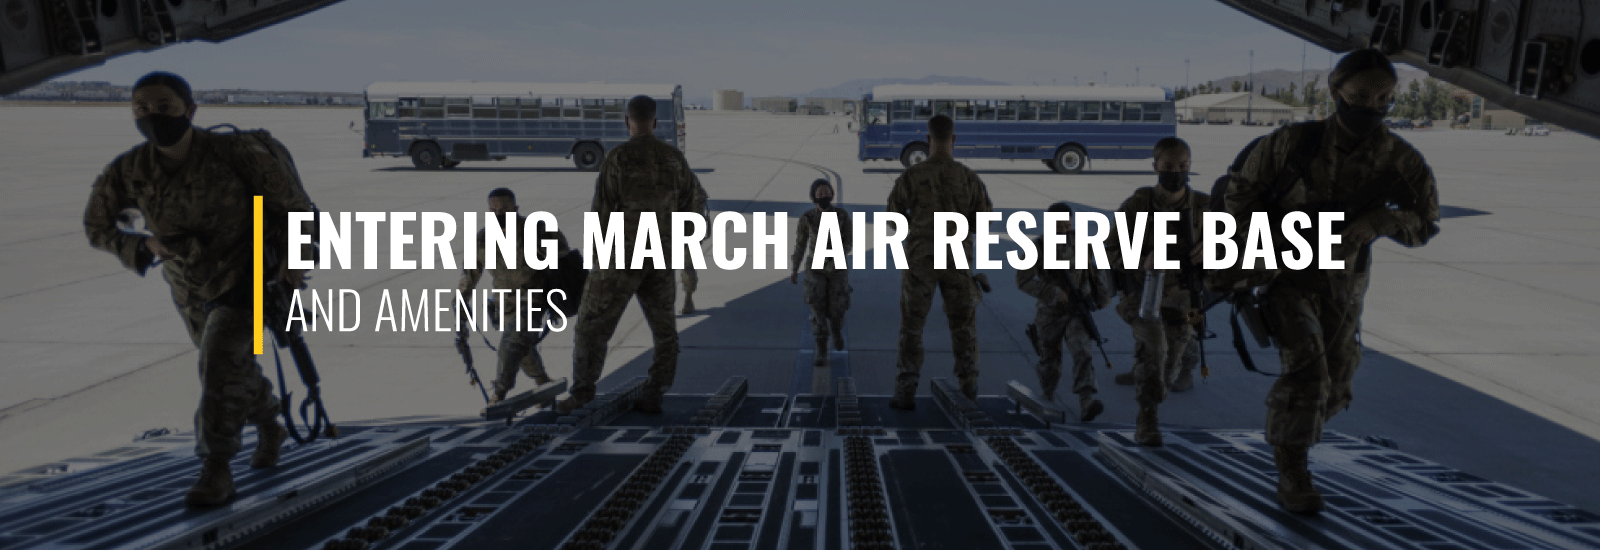 Entering March Air Reserve Base and Amenities